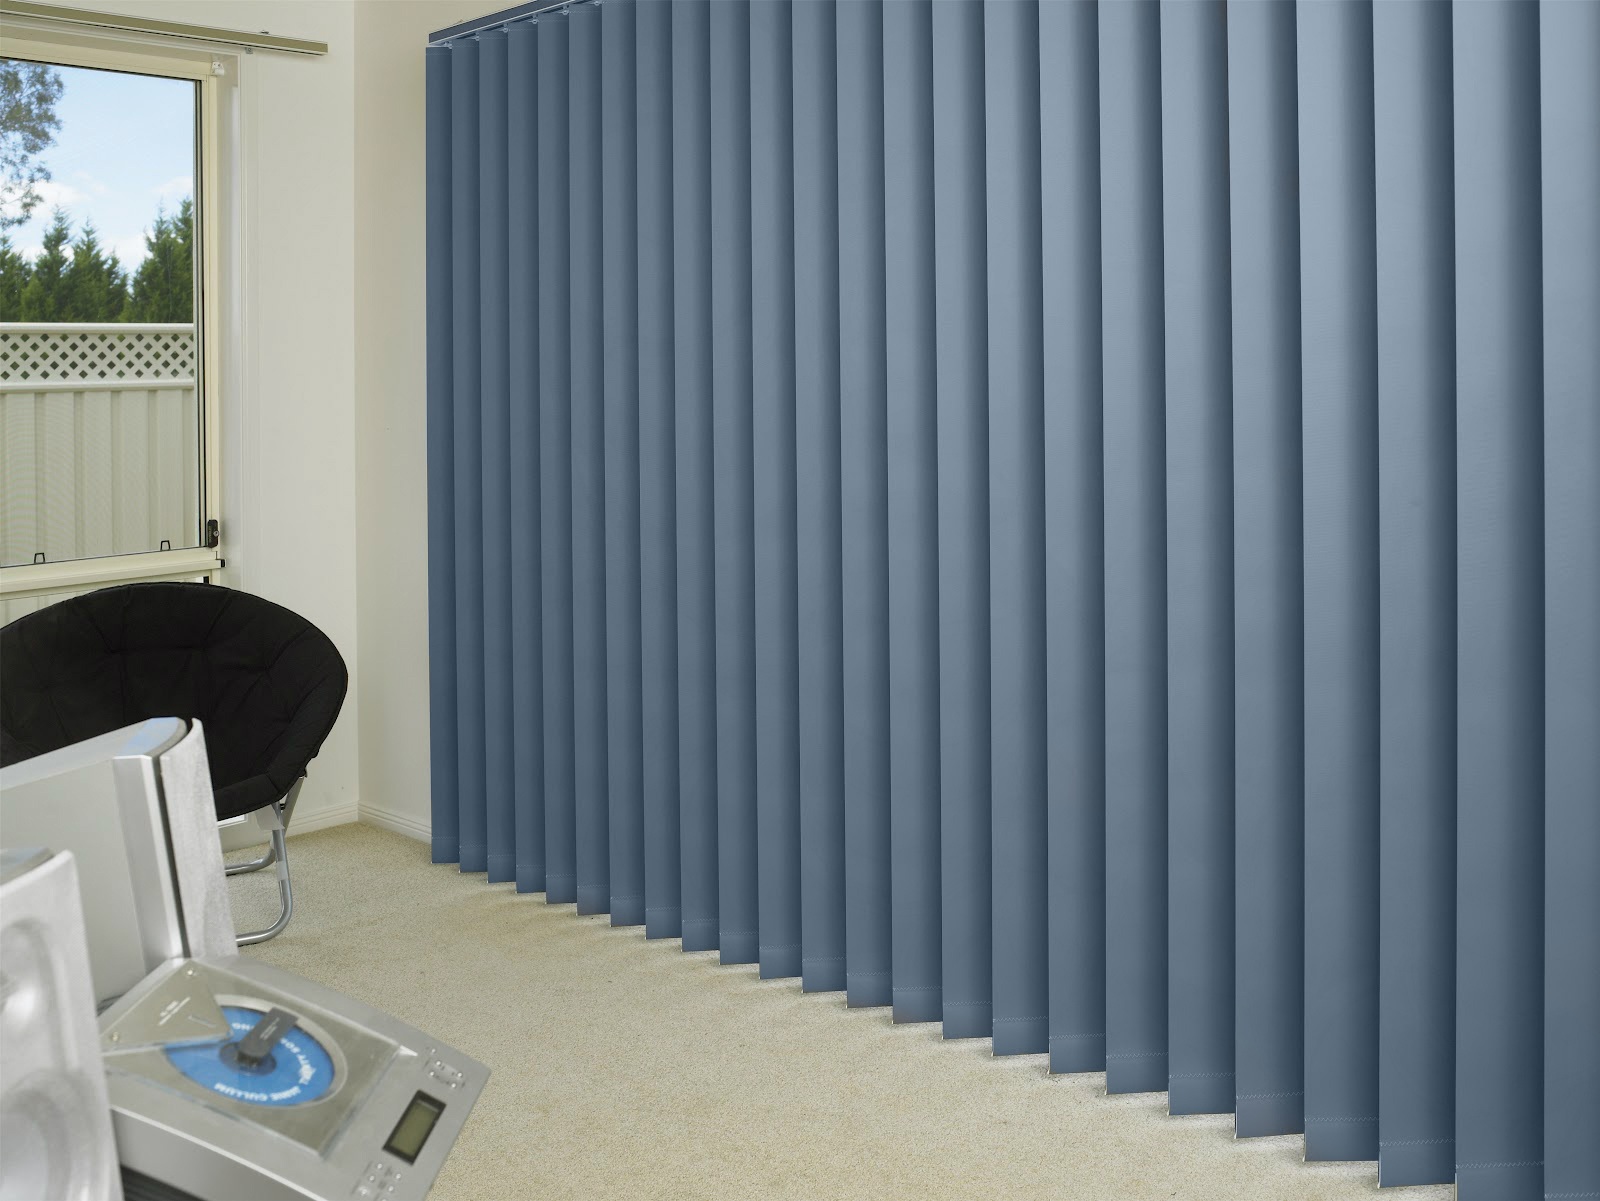 Palette Charcoal Vertical Blinds in a surgery